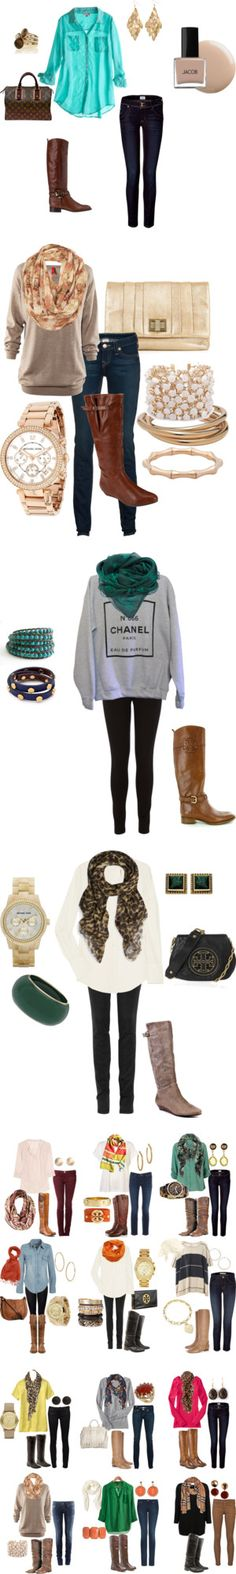 Fall outfits with tall boots.